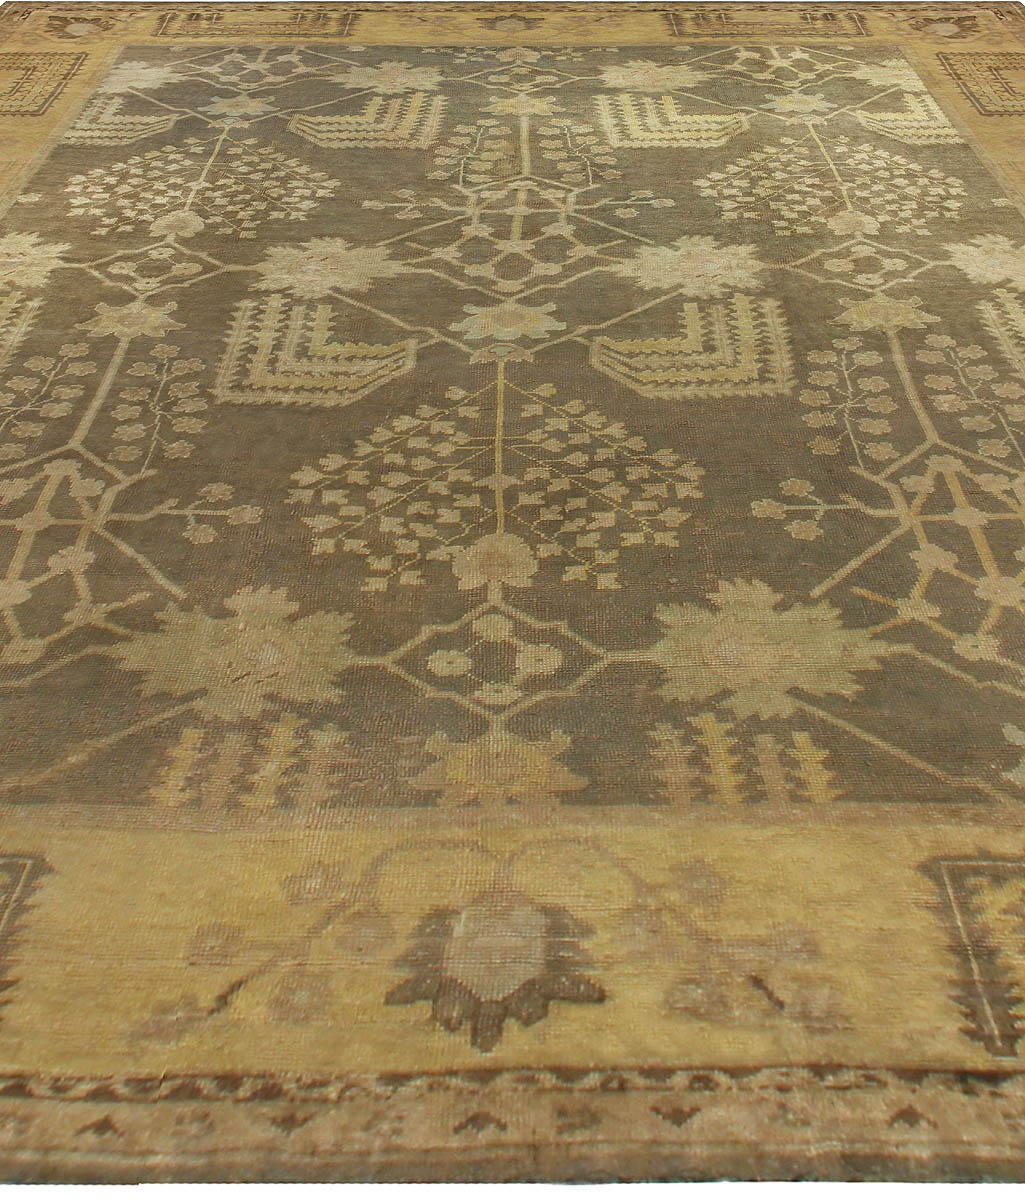 Dusty Shades of Yellow, Beige, Brown and Taupe Turkish Oushak Wool Rug BB5361